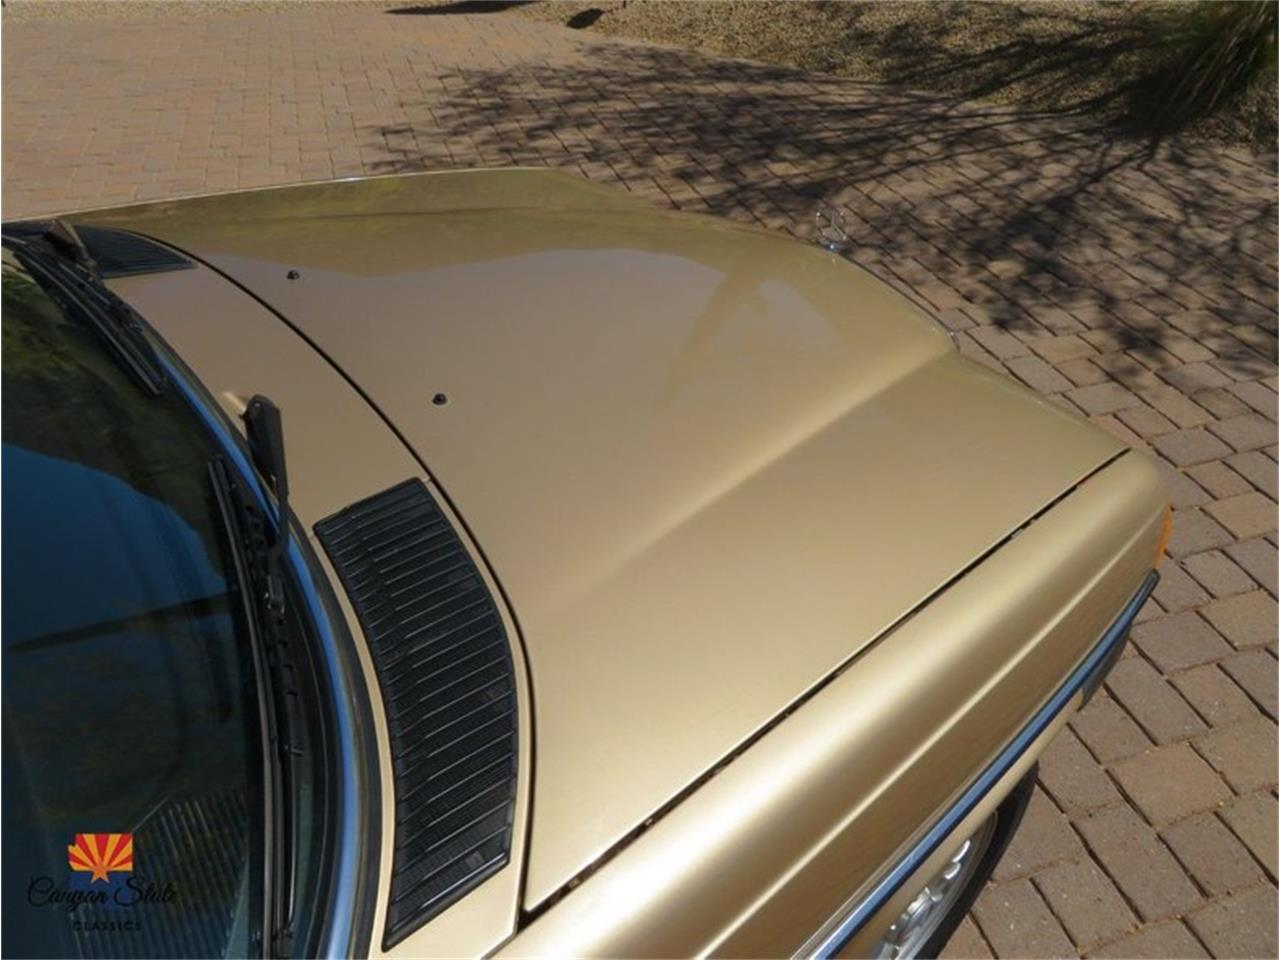 1985 Mercedes-Benz 300 for sale in Tempe, AZ – photo 22